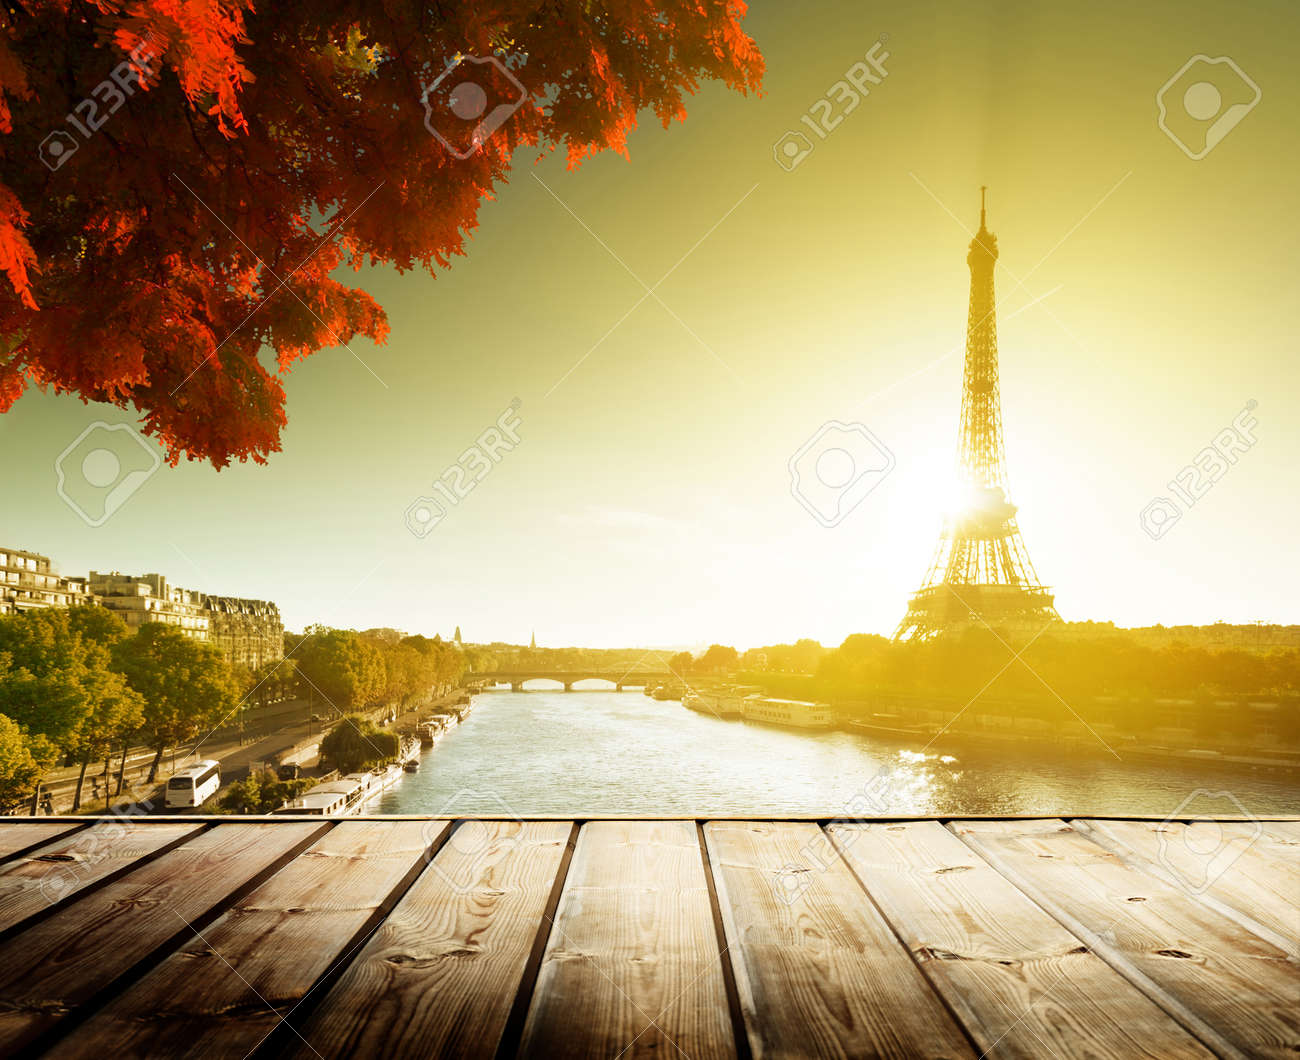 wooden deck table and  Eiffel tower in autumn Stock Photo - 22936269